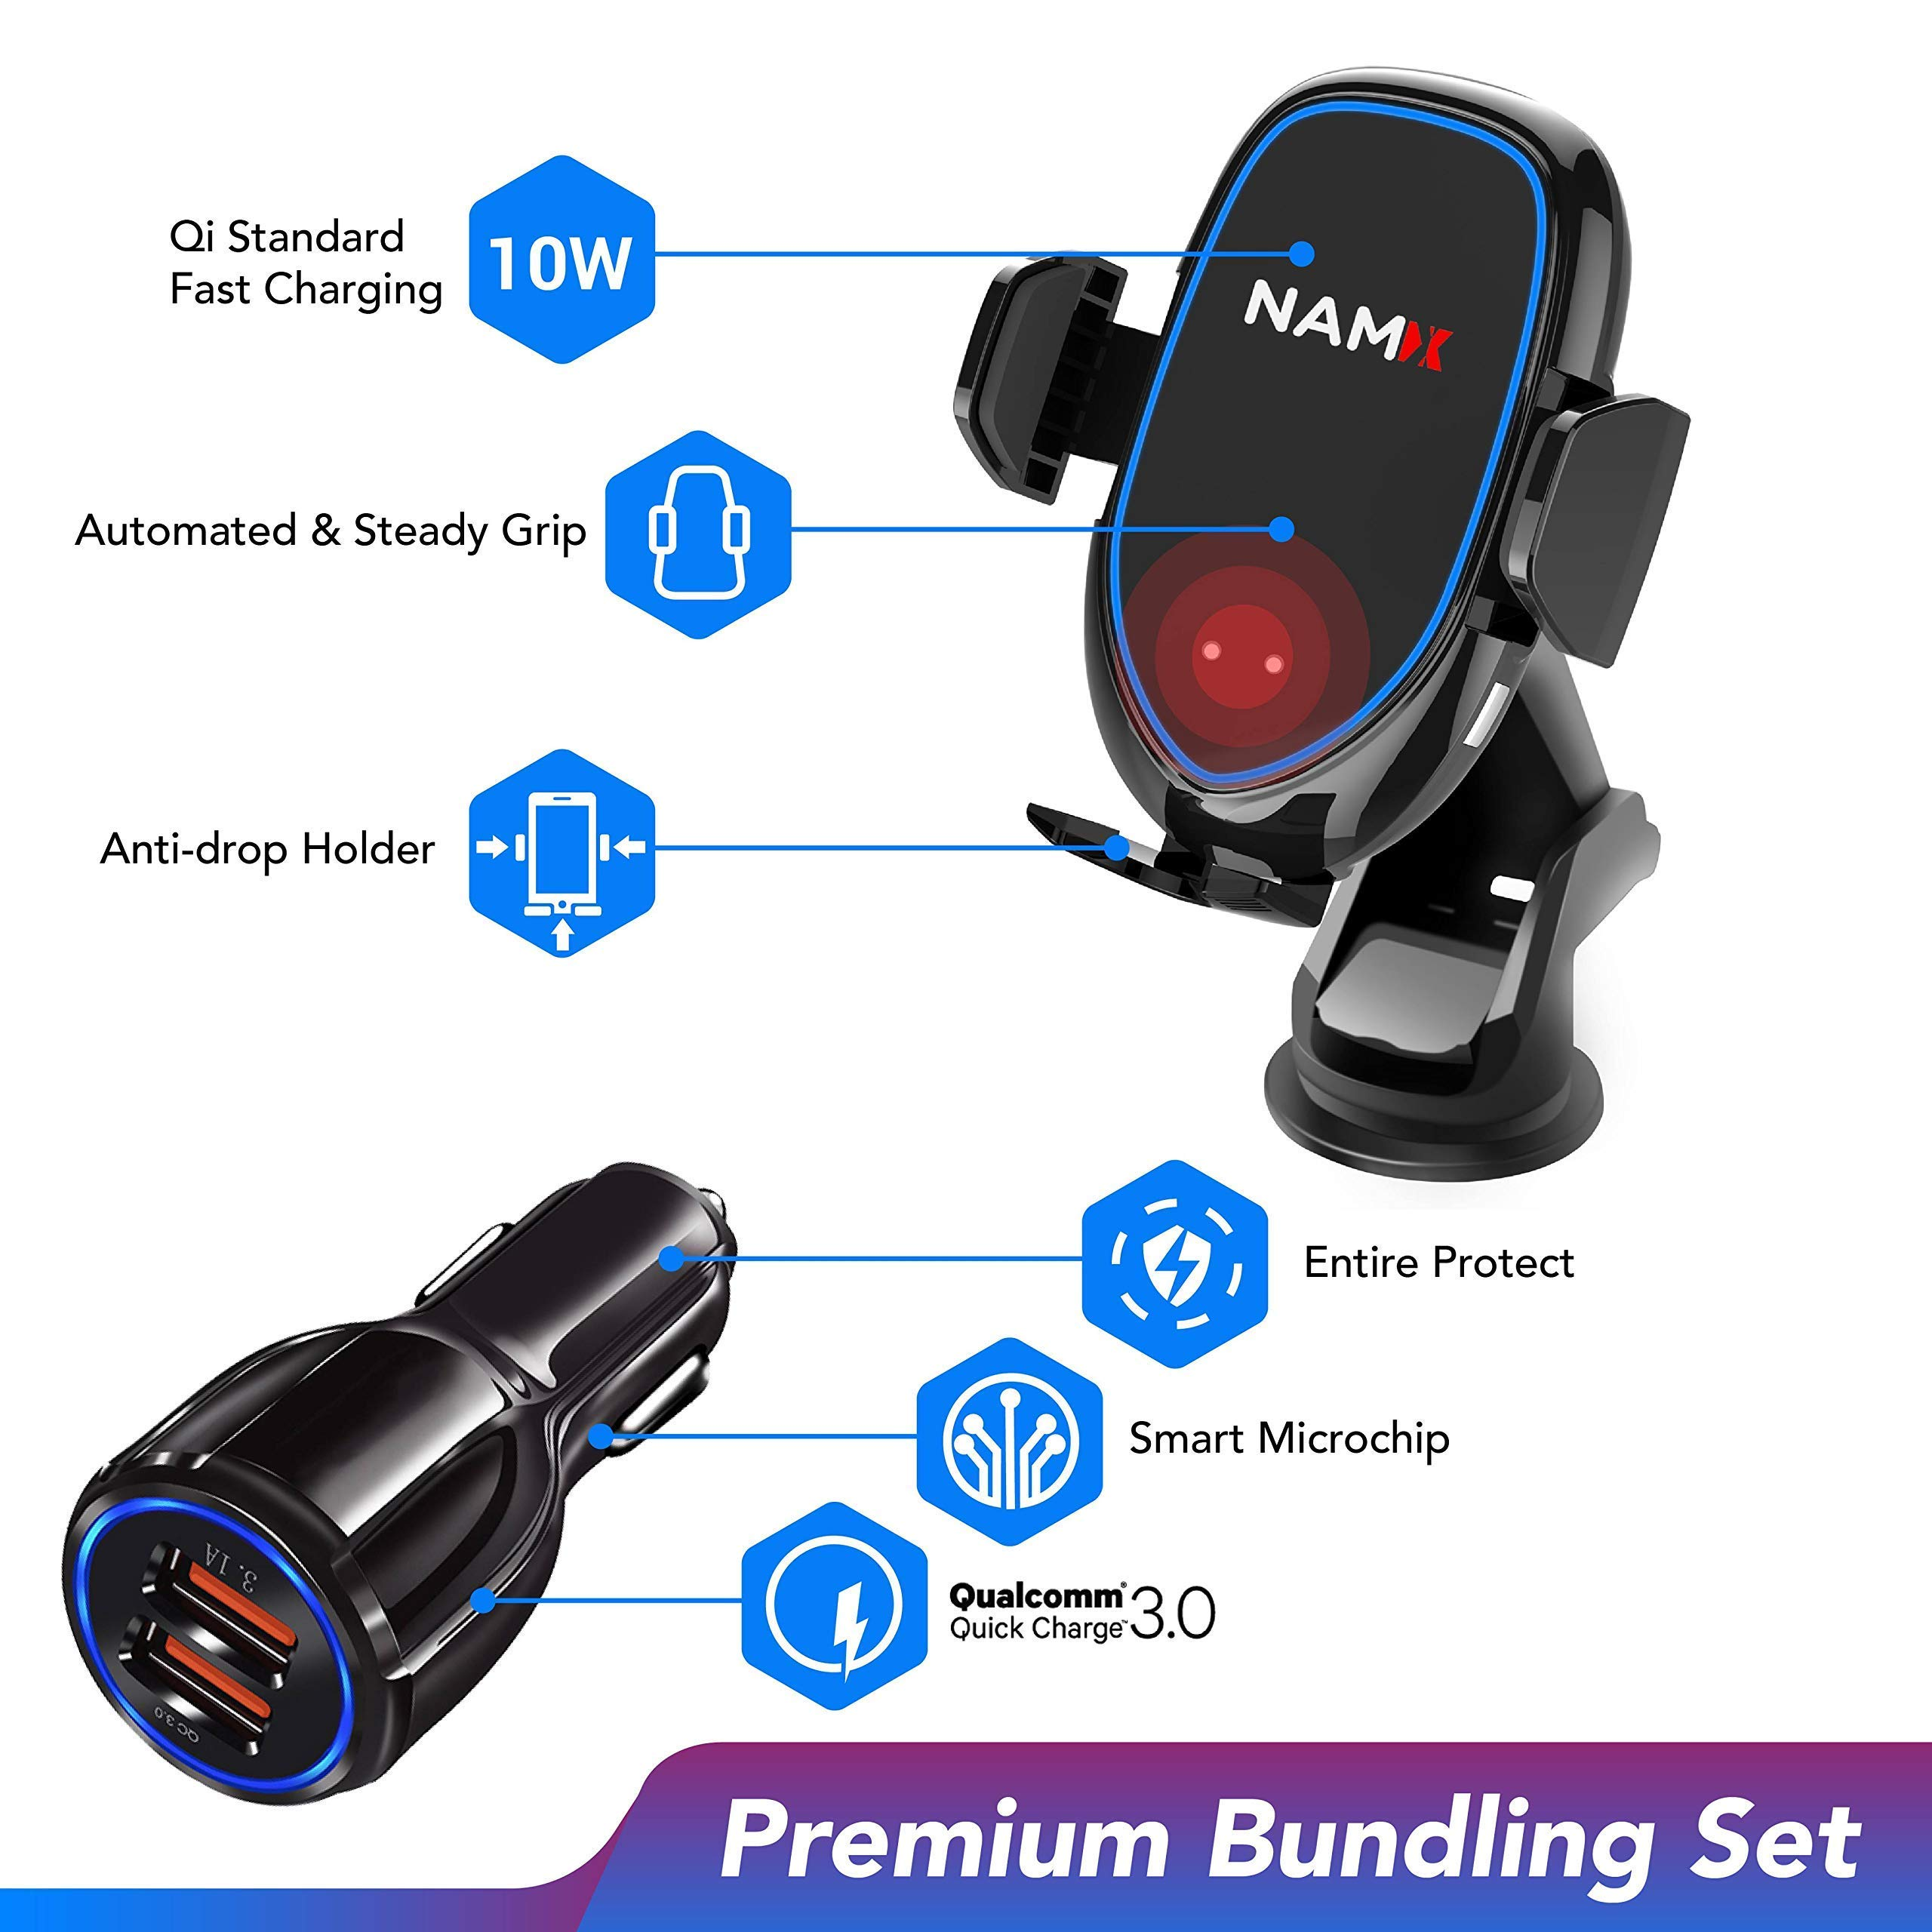 NAM-X 10W Auto Clamping Smart-Sensor Wireless Car Charger Bundling Set - Built-in Smart Fan - Included Dashboard Mount & Air Vent Clip - Bundle QC 3.0 - Compatible for All Qi-Enabled Phone